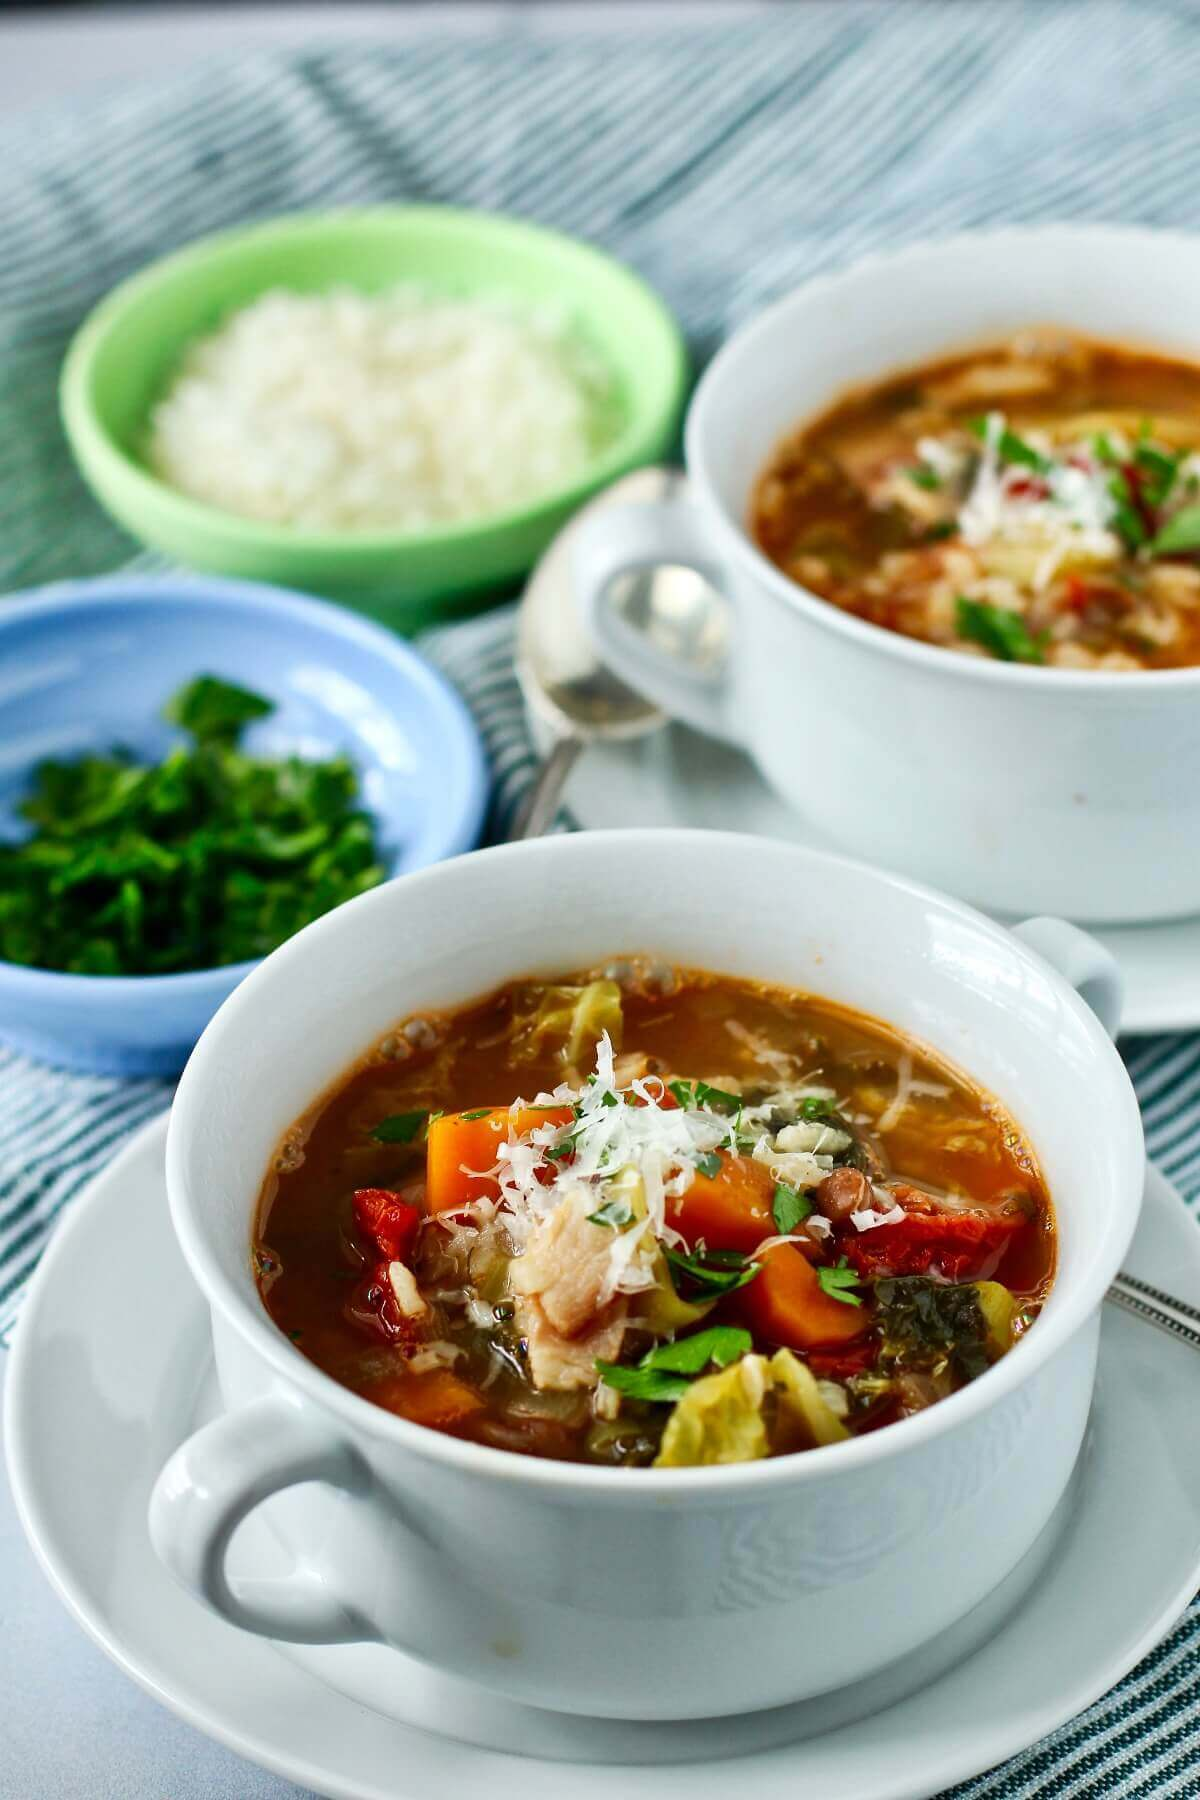 Ticinese Minestrone soup with Savoy cabbage